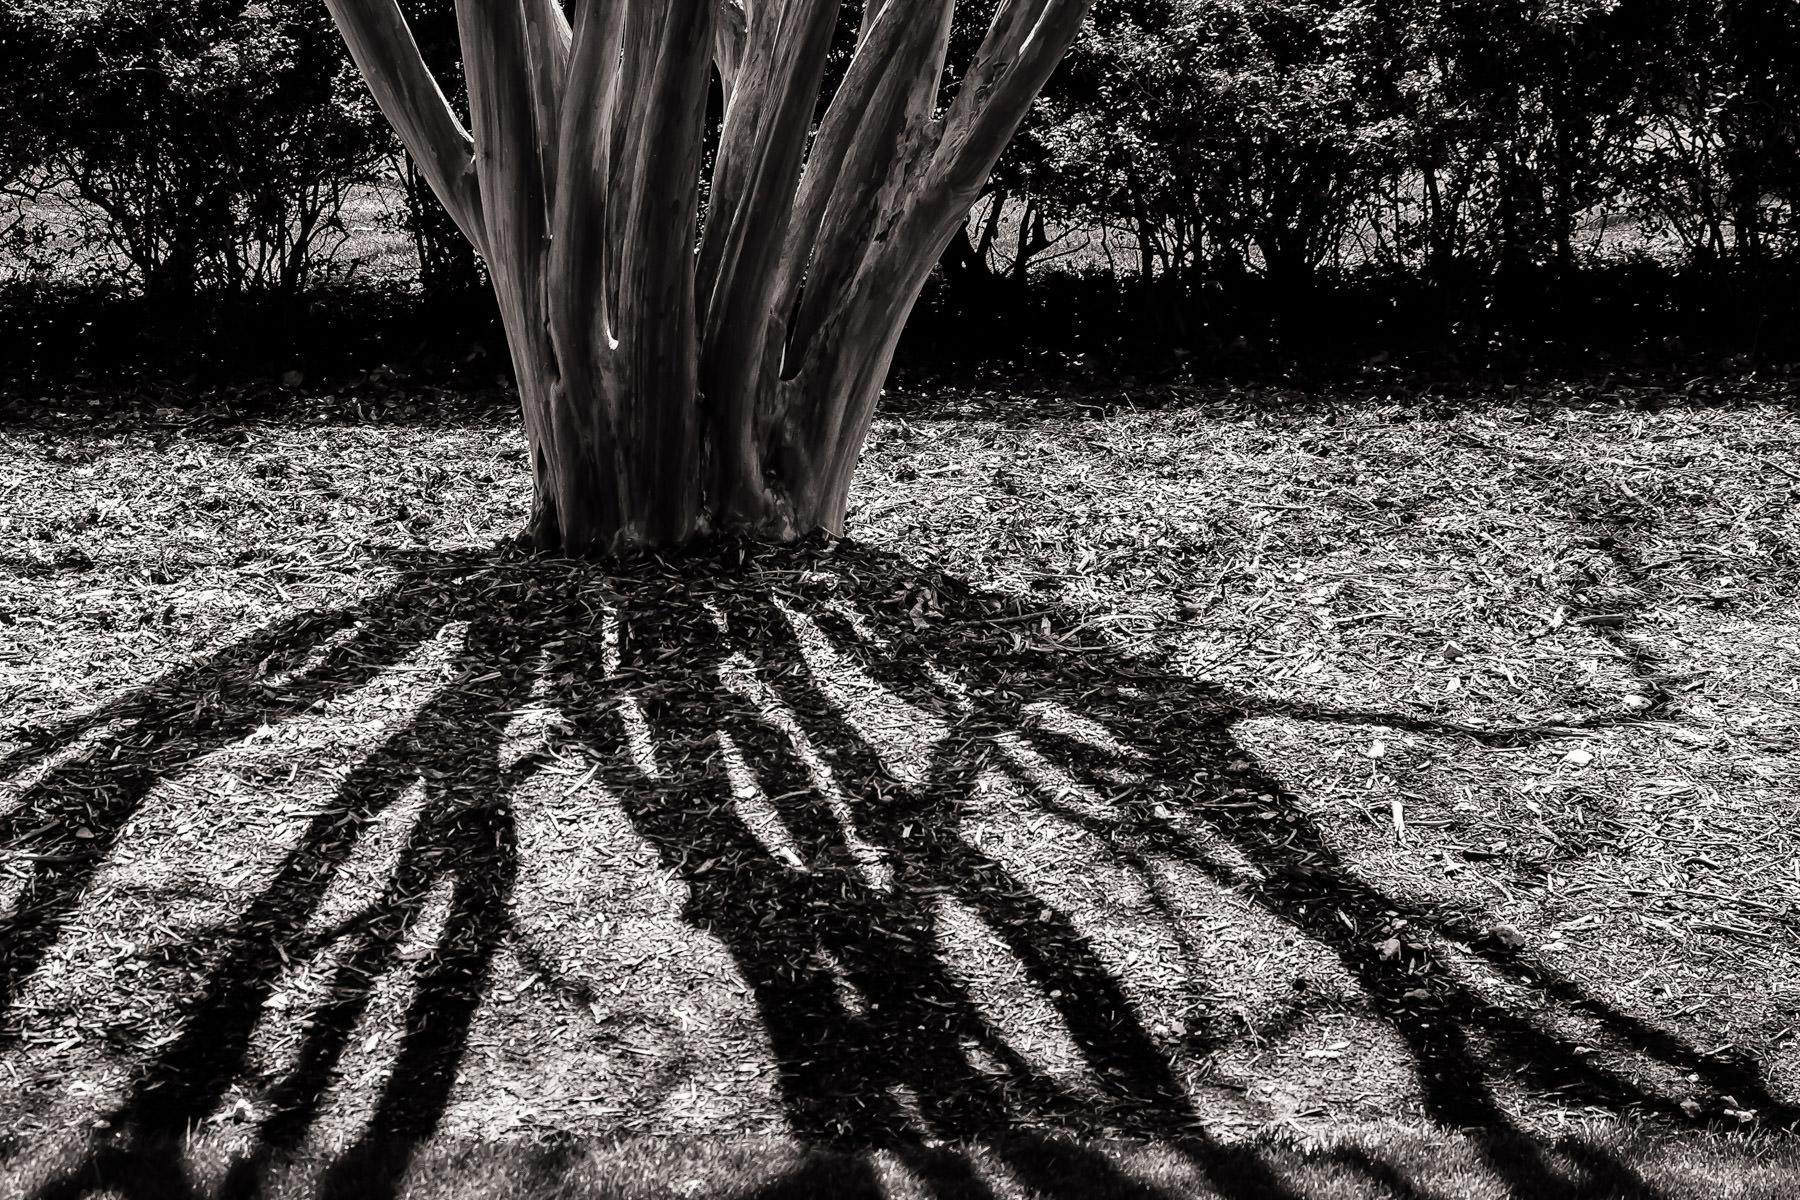 The shadows of a tree's branches resemble the tentacles of an octopus or a horror imagined by H.P. Lovecraft at the Dallas Arboretum.